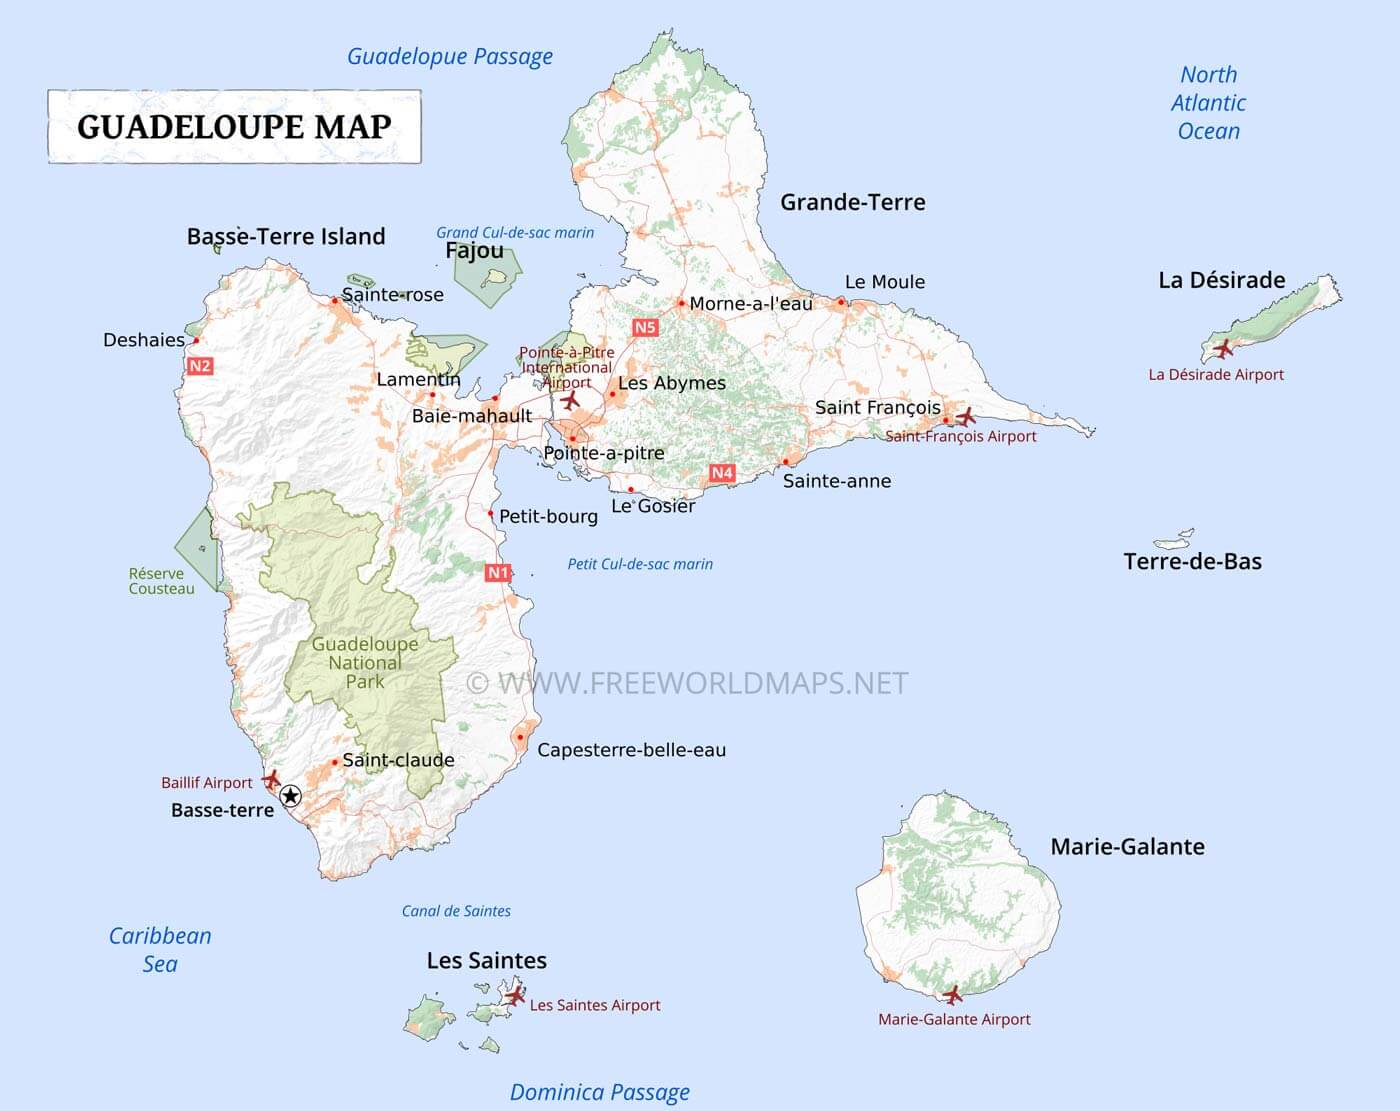 guadeloupe map. guadeloupe map geographical features of guadeloupe of the